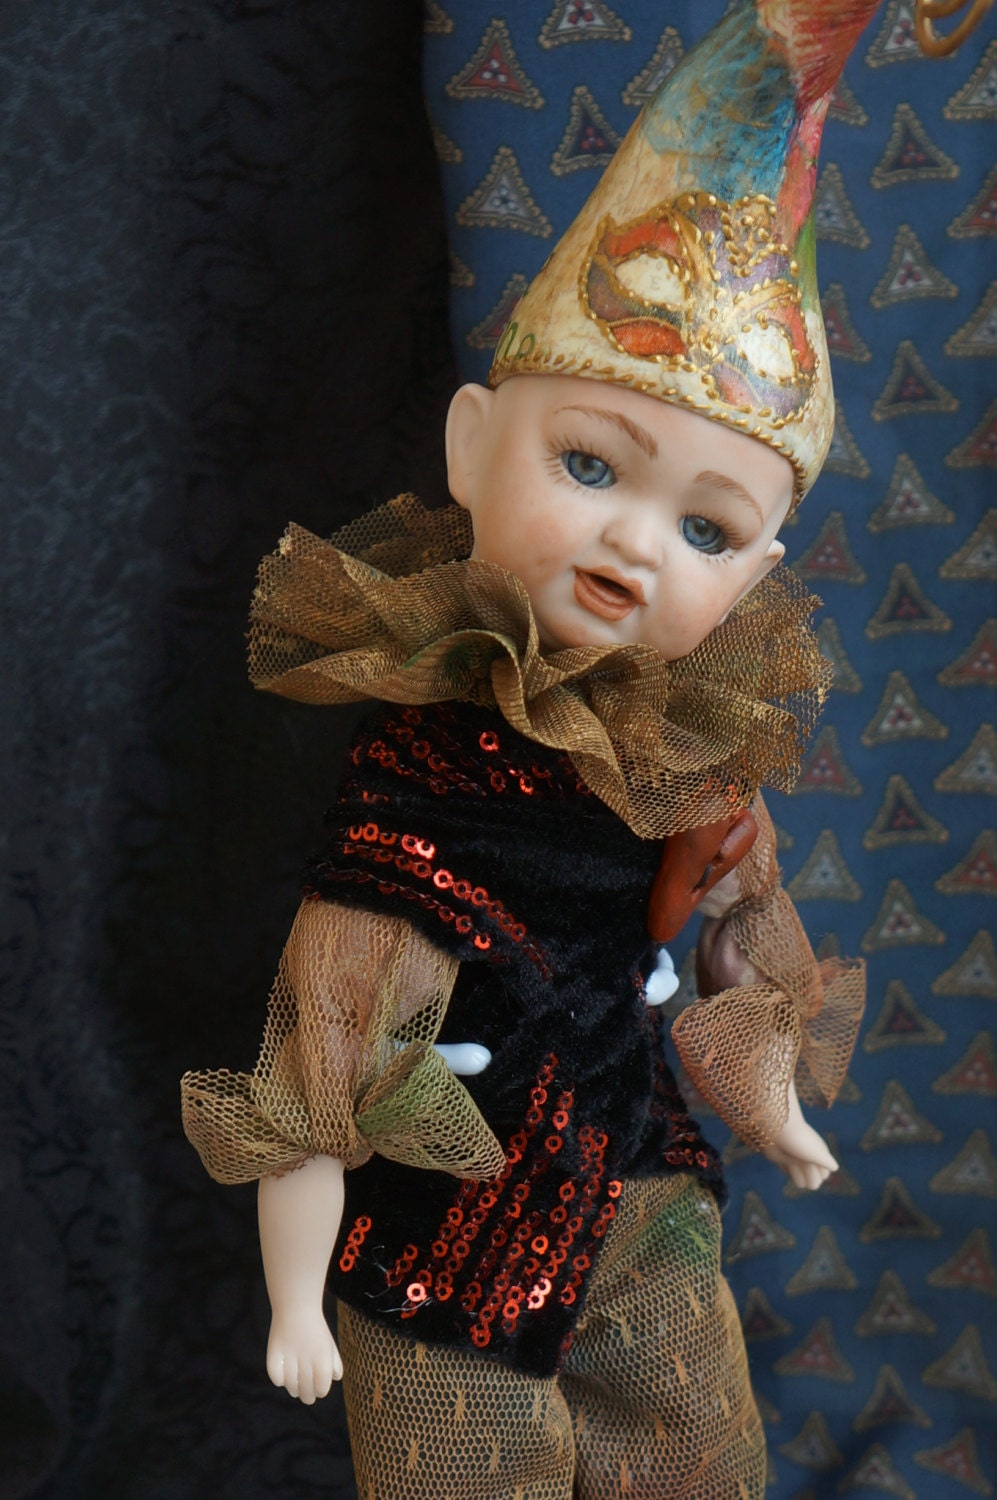 Antique collectible porcelain doll . Antique Bisque Doll. Doll